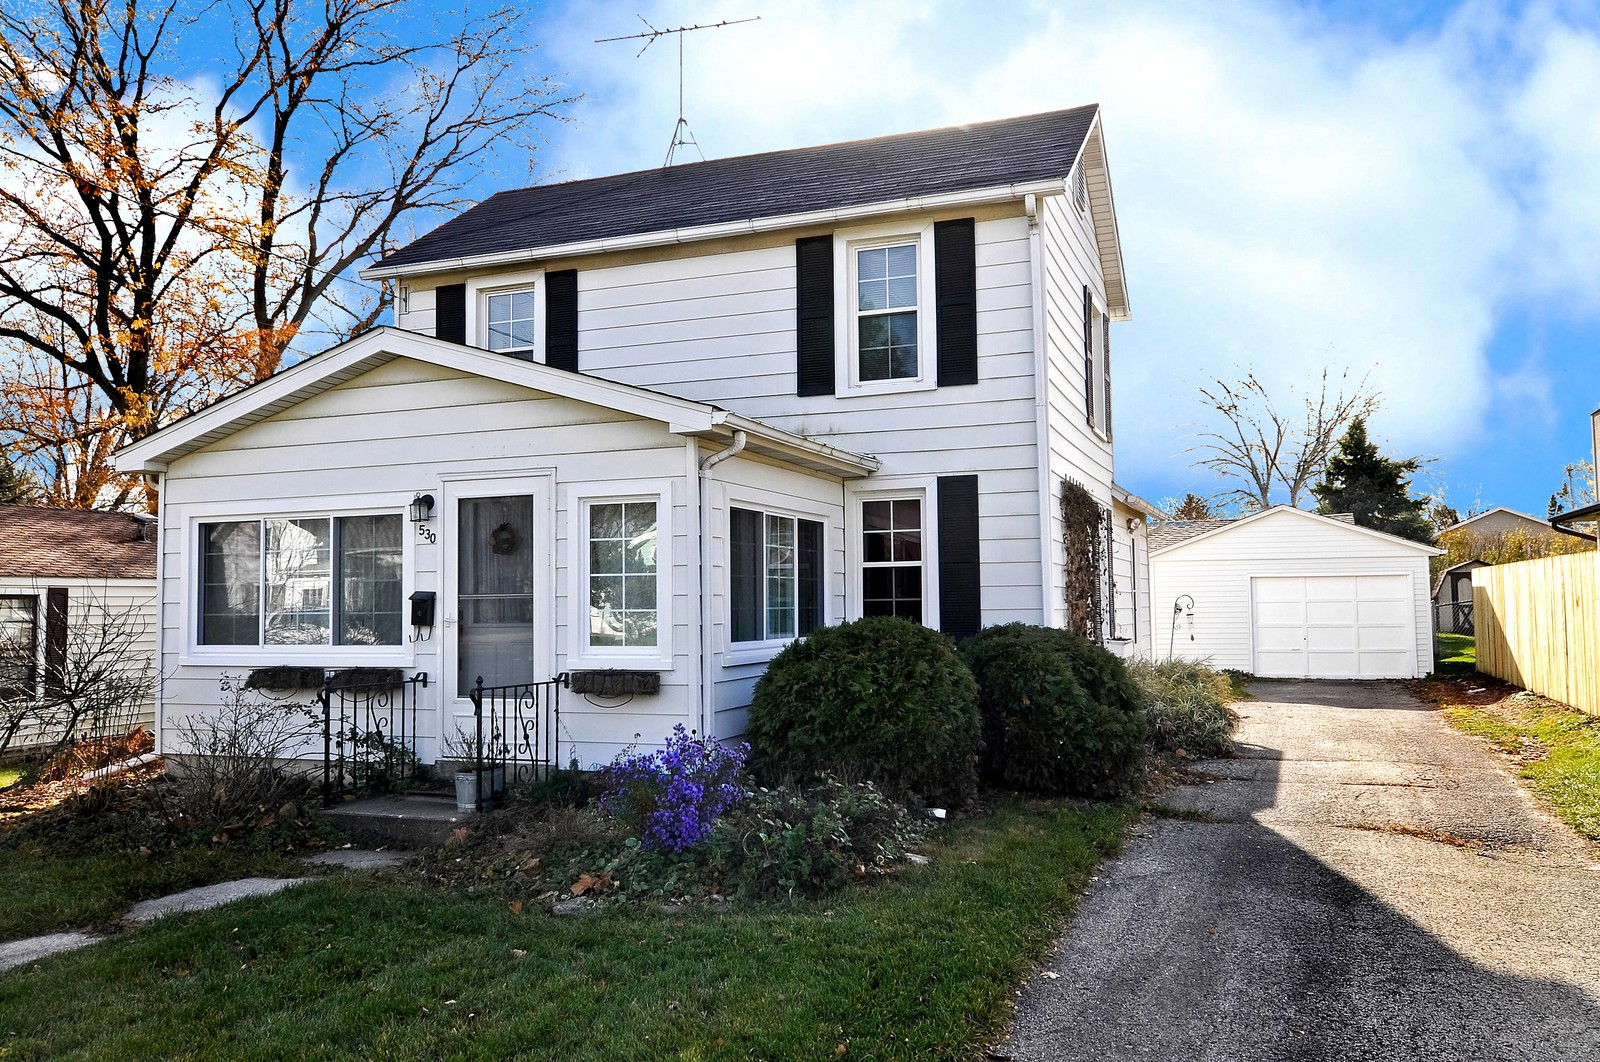 Real Estate Photography - 530 Wilson, Batavia, IL, 60510 - Front View